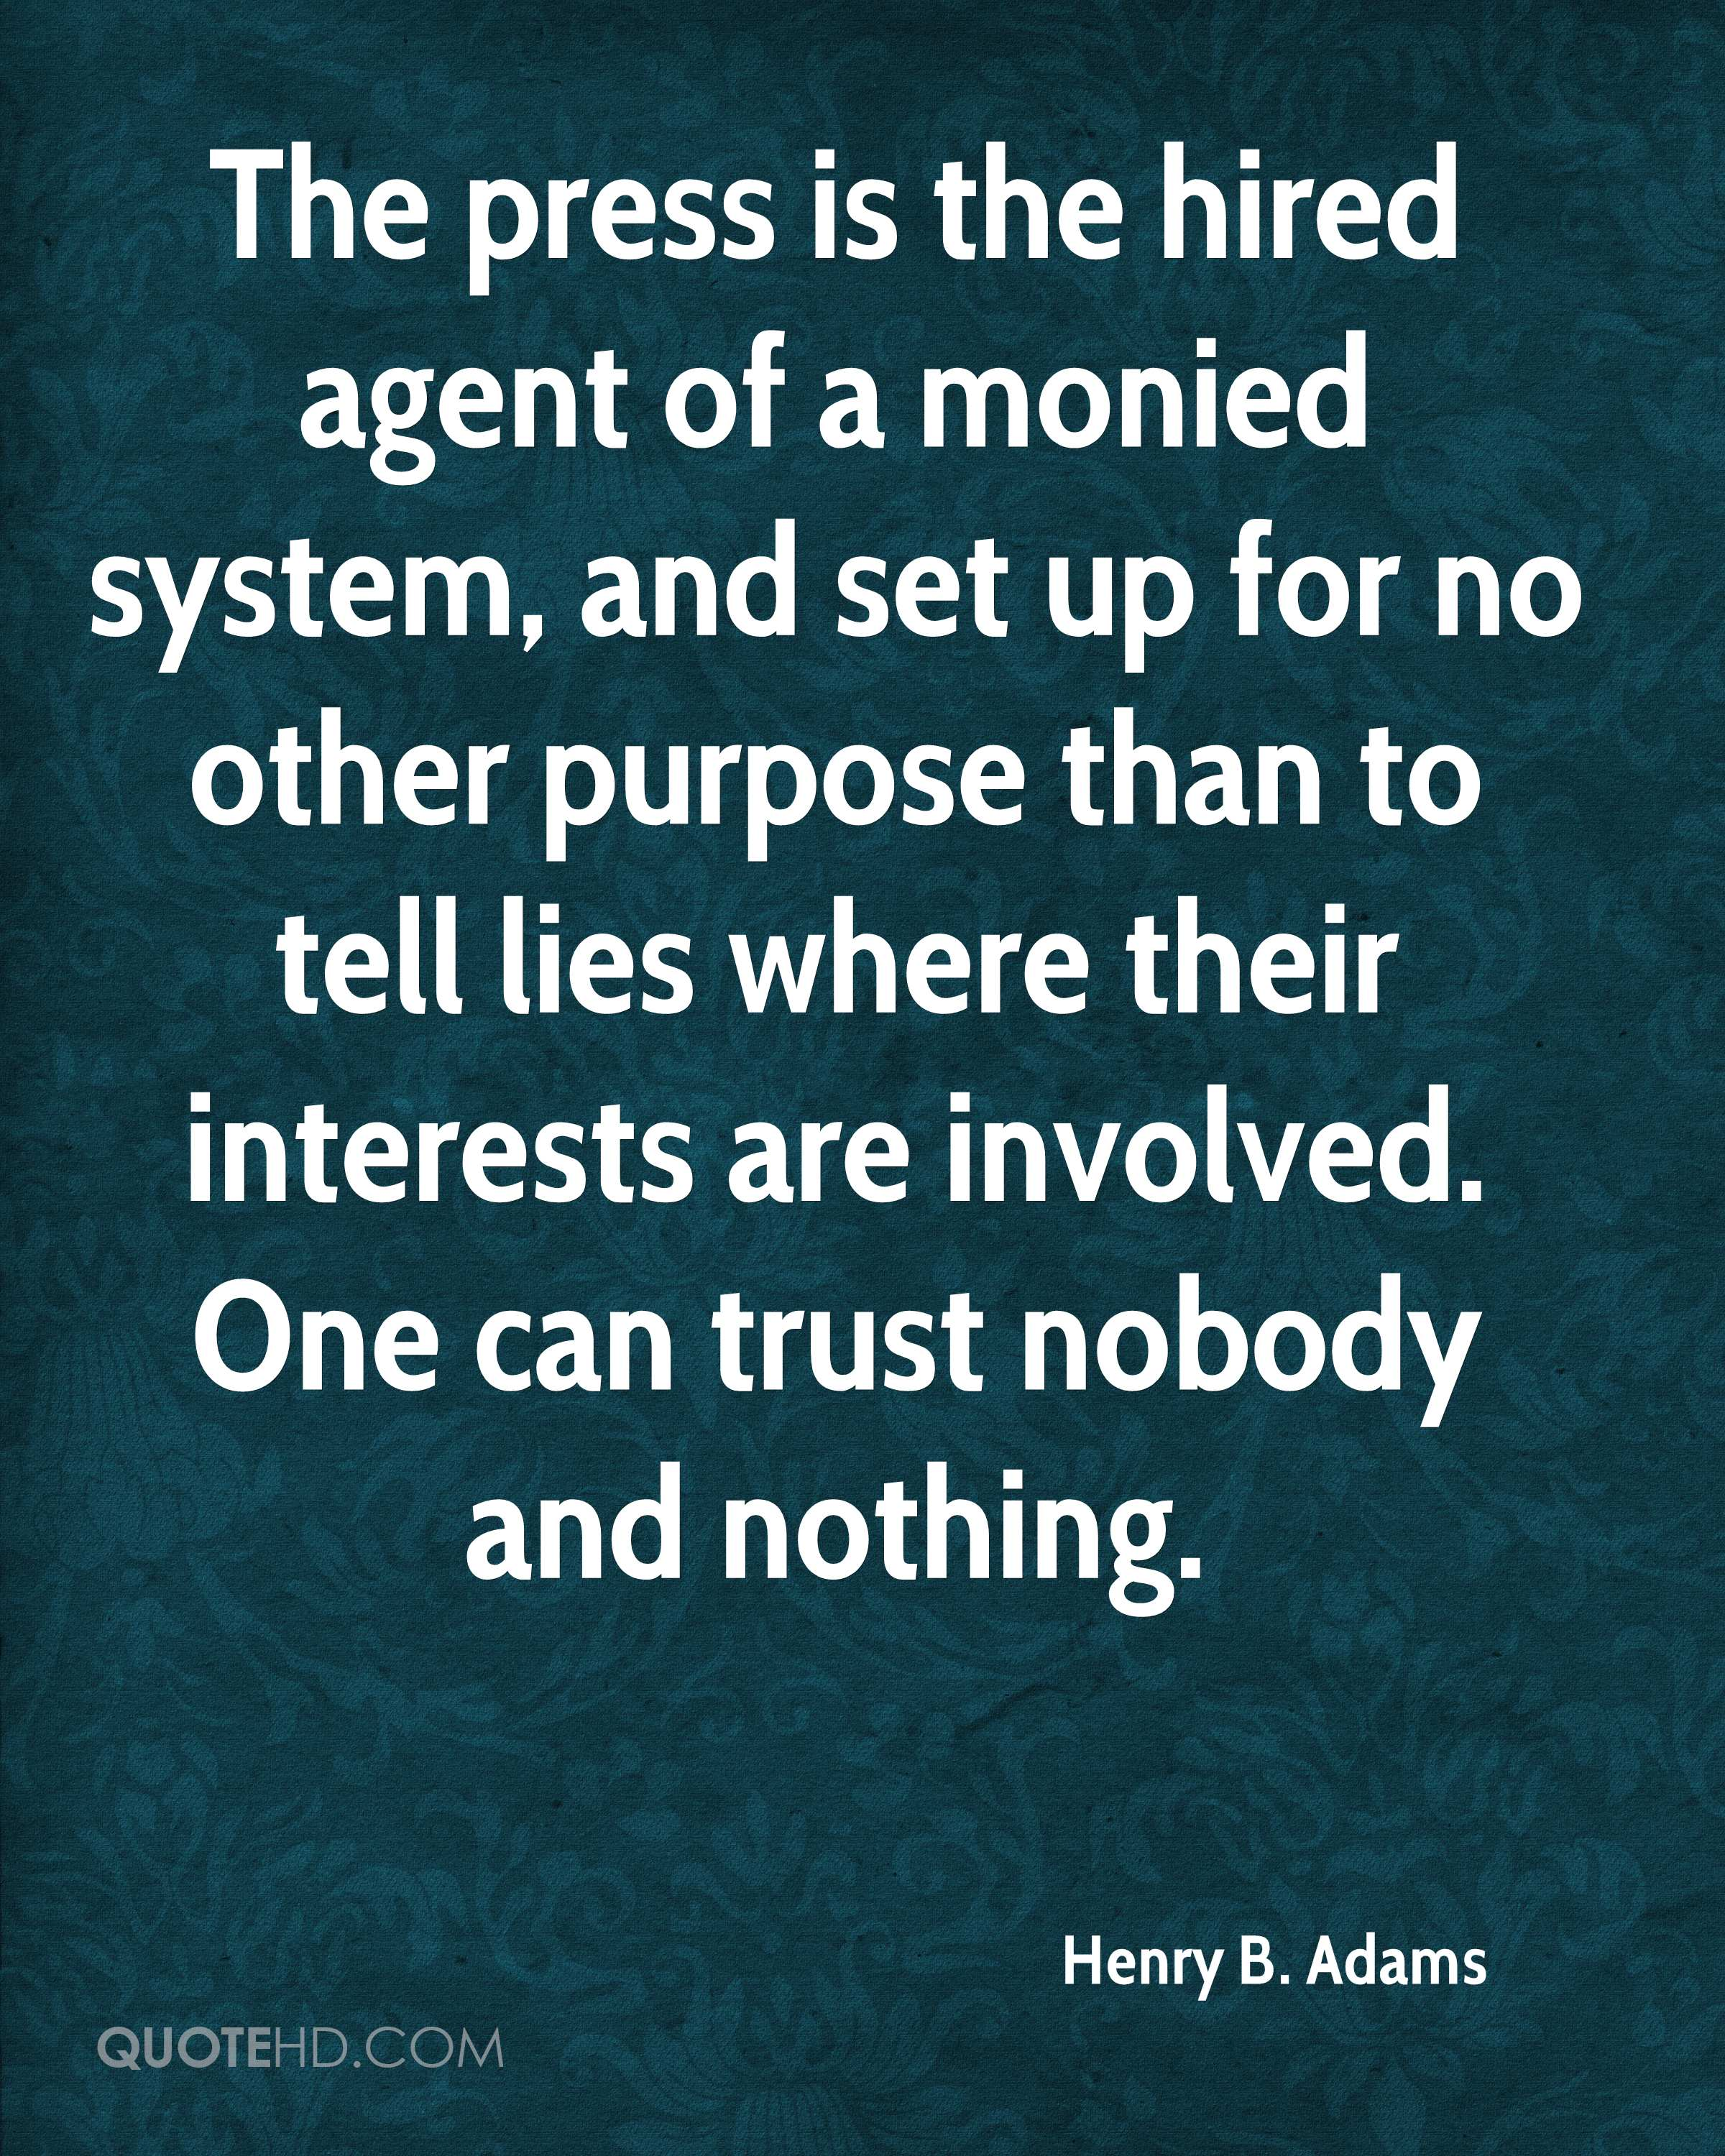 The press is the hired agent of a monied system, and set up for no other purpose than to tell lies where their interests are involved. One can trust nobody and nothing.